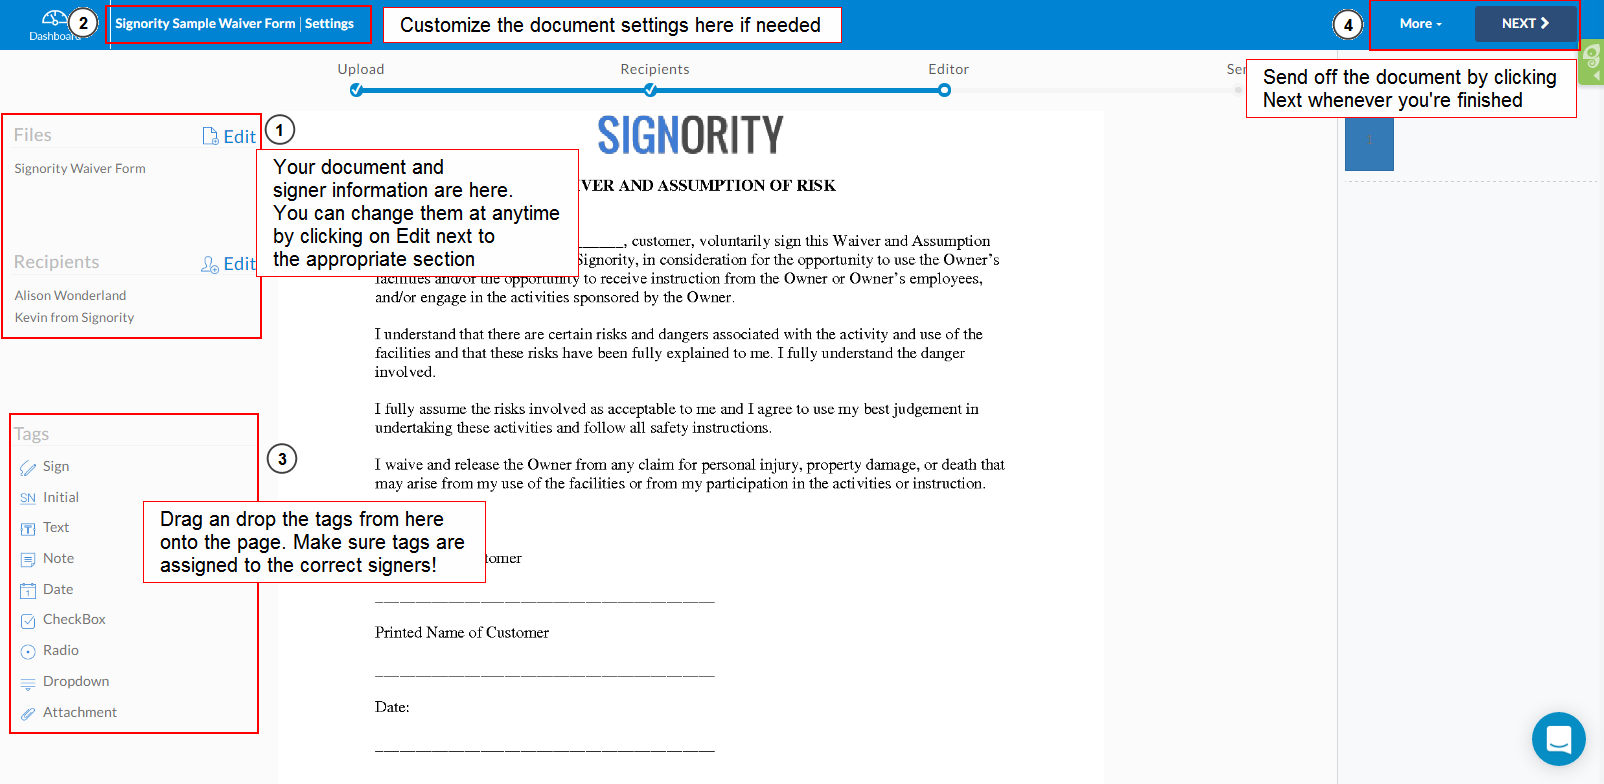 Create Electronic Signature Documents for Others | Signority ...